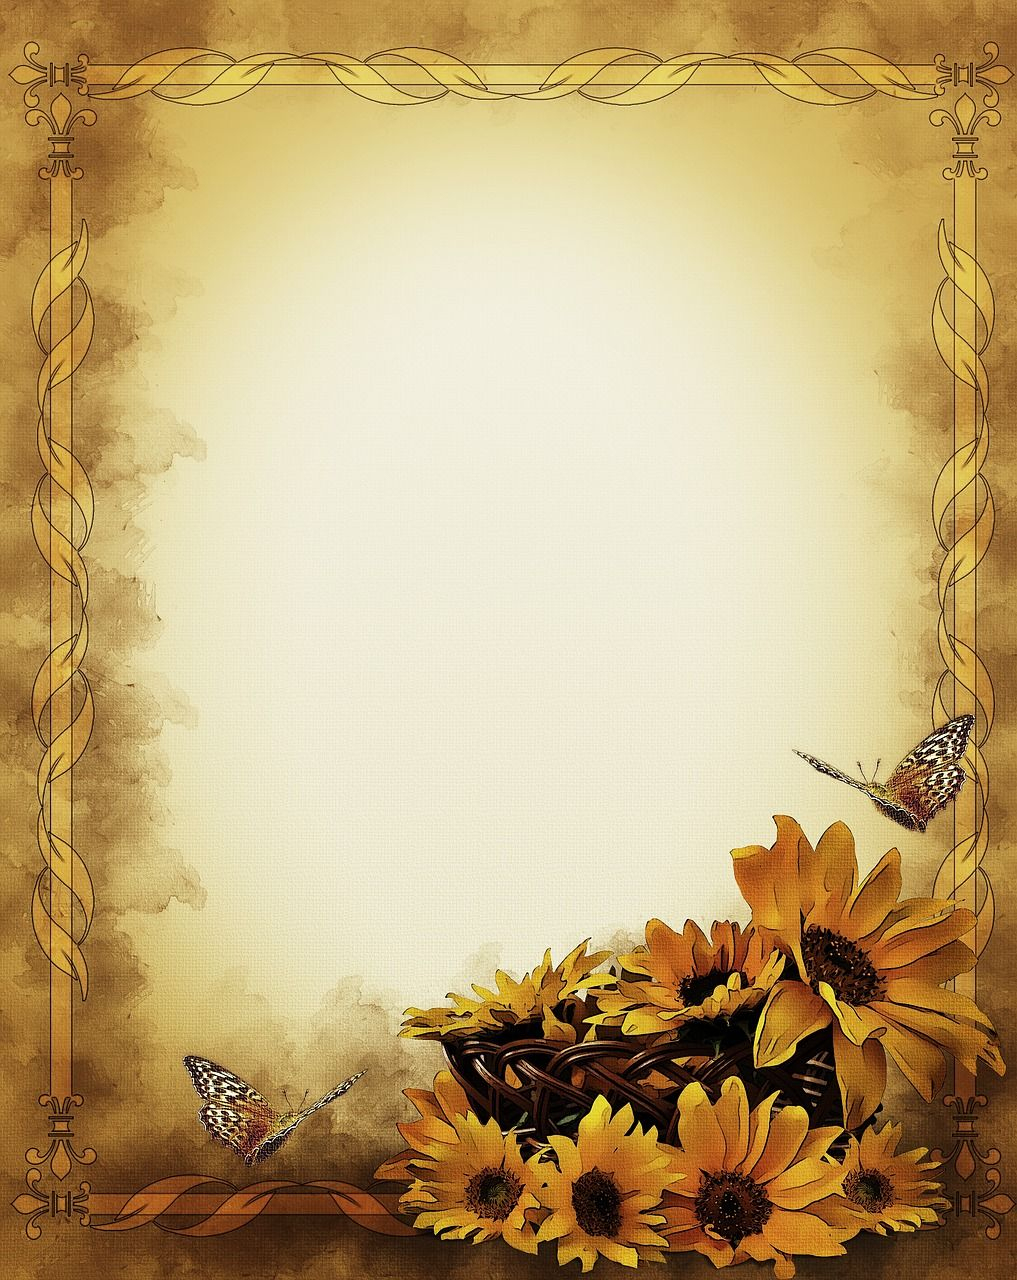 Free Image On Pixabay - Sunflowers, Still Life, Frame | Sunflowers - Free Printable Sunflower Stationery